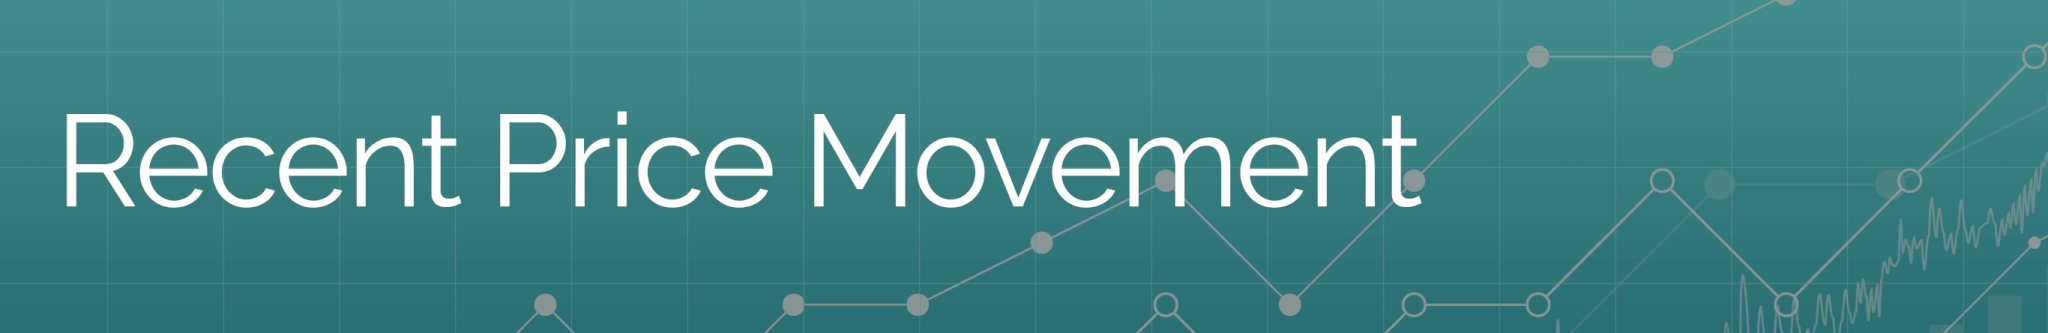 Recent Price Movement Header